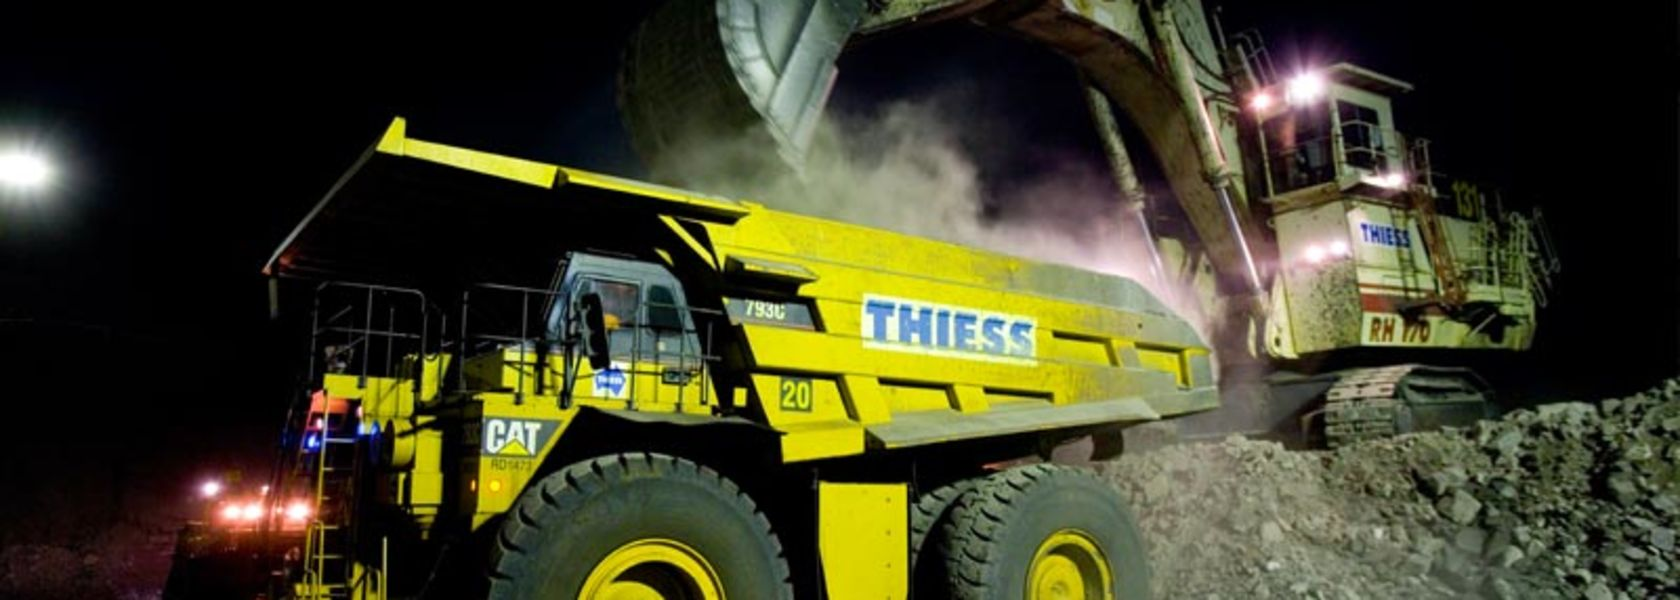 Indian police summons Thiess chief